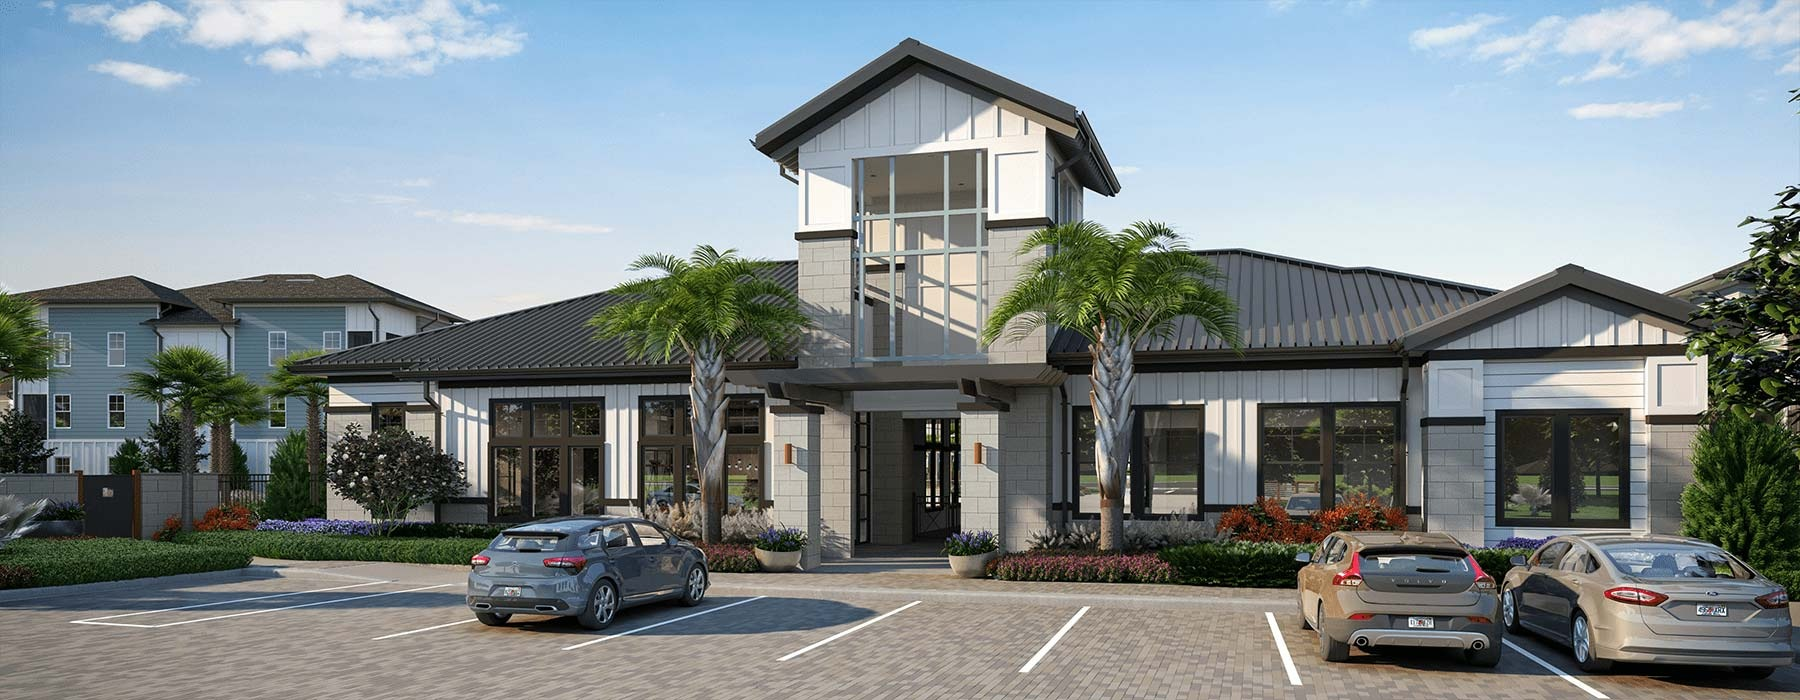 rendering of entrance to Bainbridge Sunlake showing ample parking and tropical landscaping